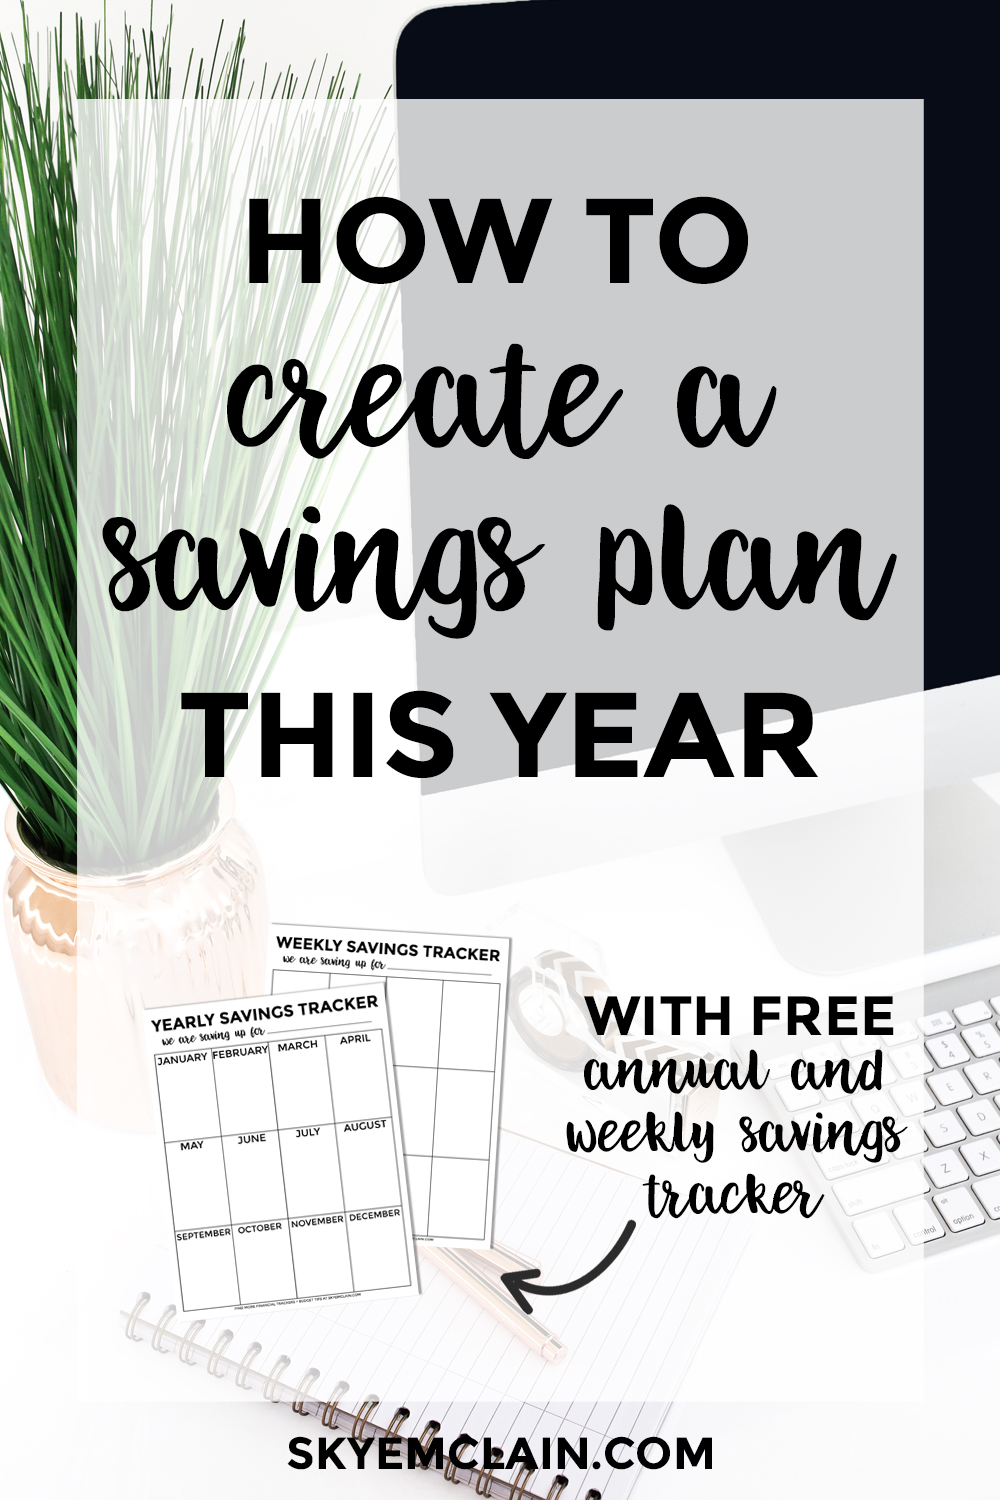 How to Create a Money Saving Plan this Year with Annual and Weekly Savings Trackers - download your free trackers at skyemclain.com